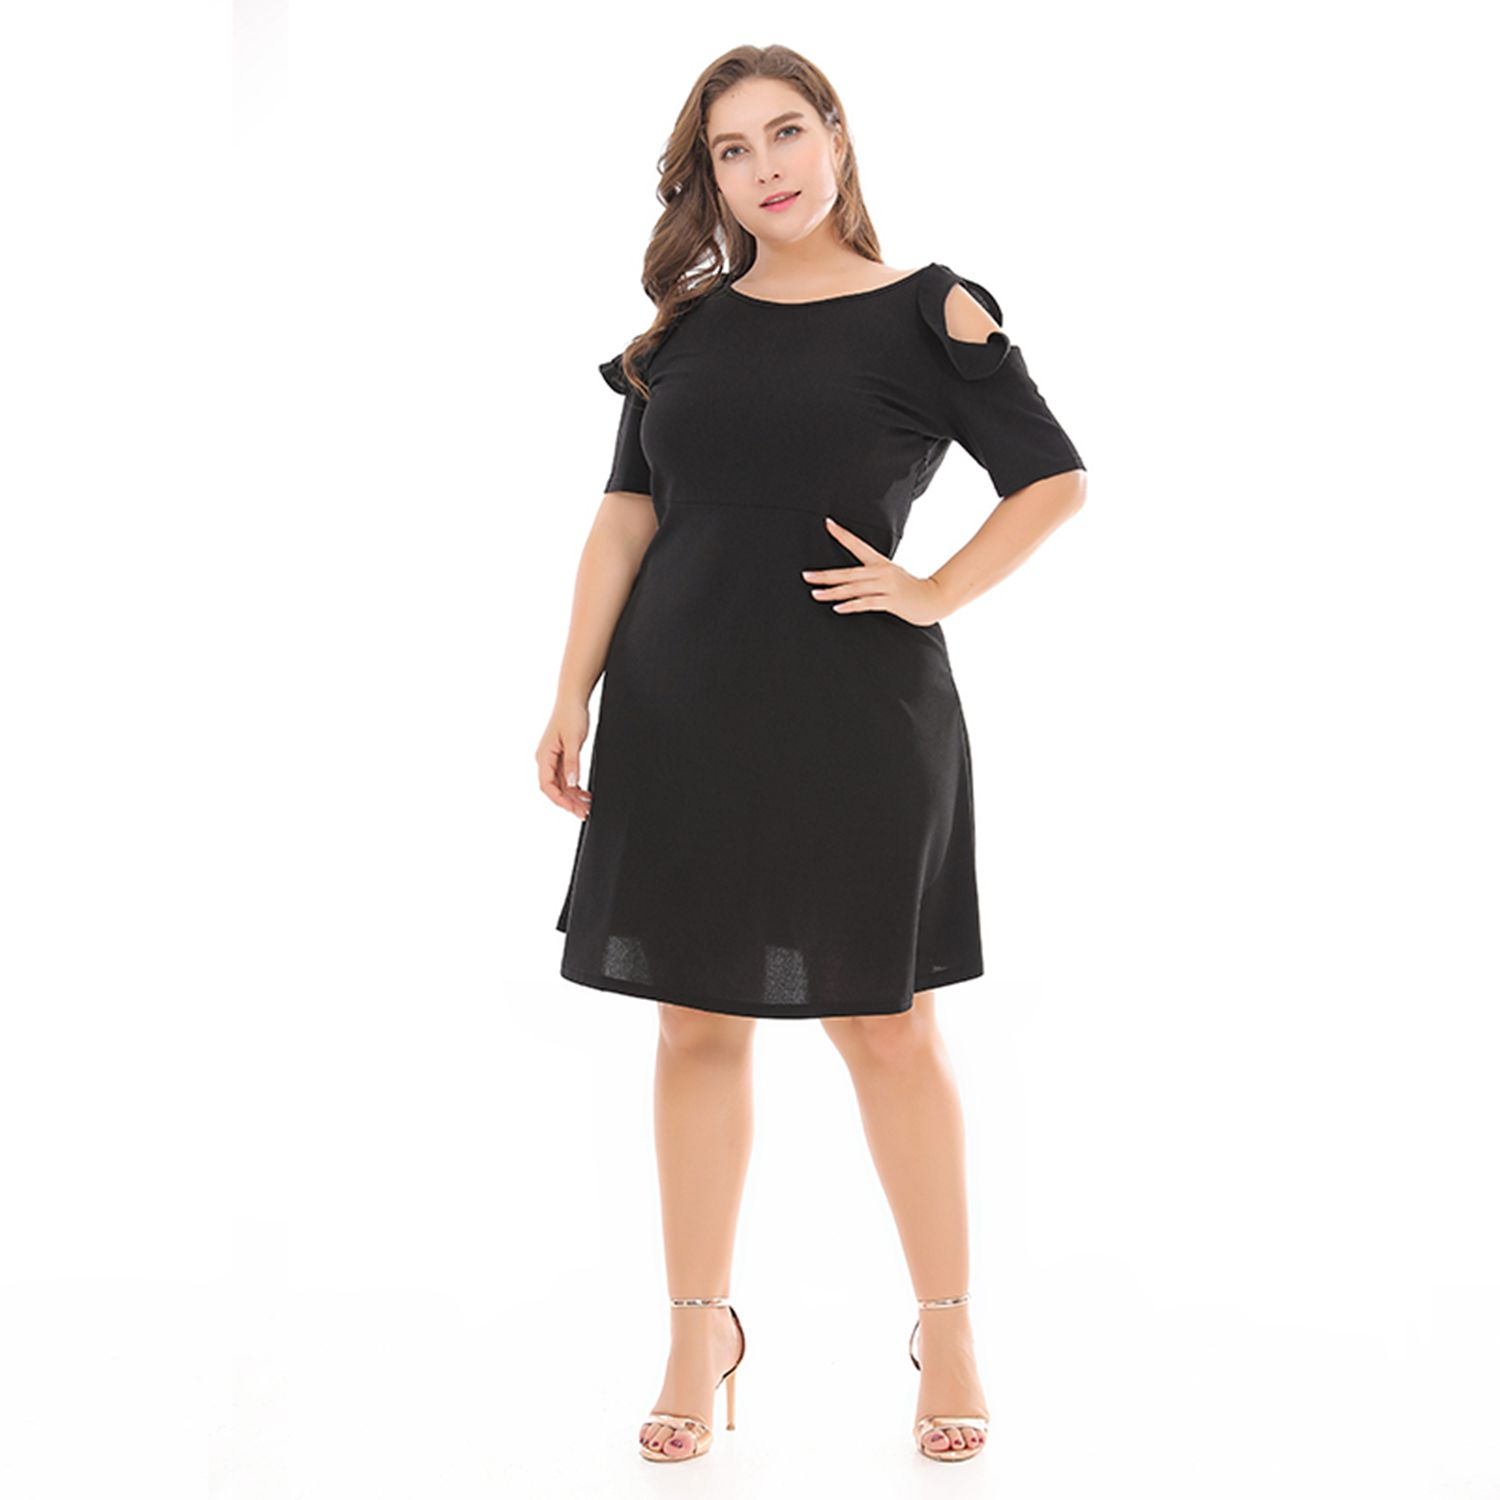 2018 Spring Summer Dresses Women's Cotton Plus Size Bandage Dress Sexy Party Off Shoulder O Neck Knee Dress Large Size XL-6XL